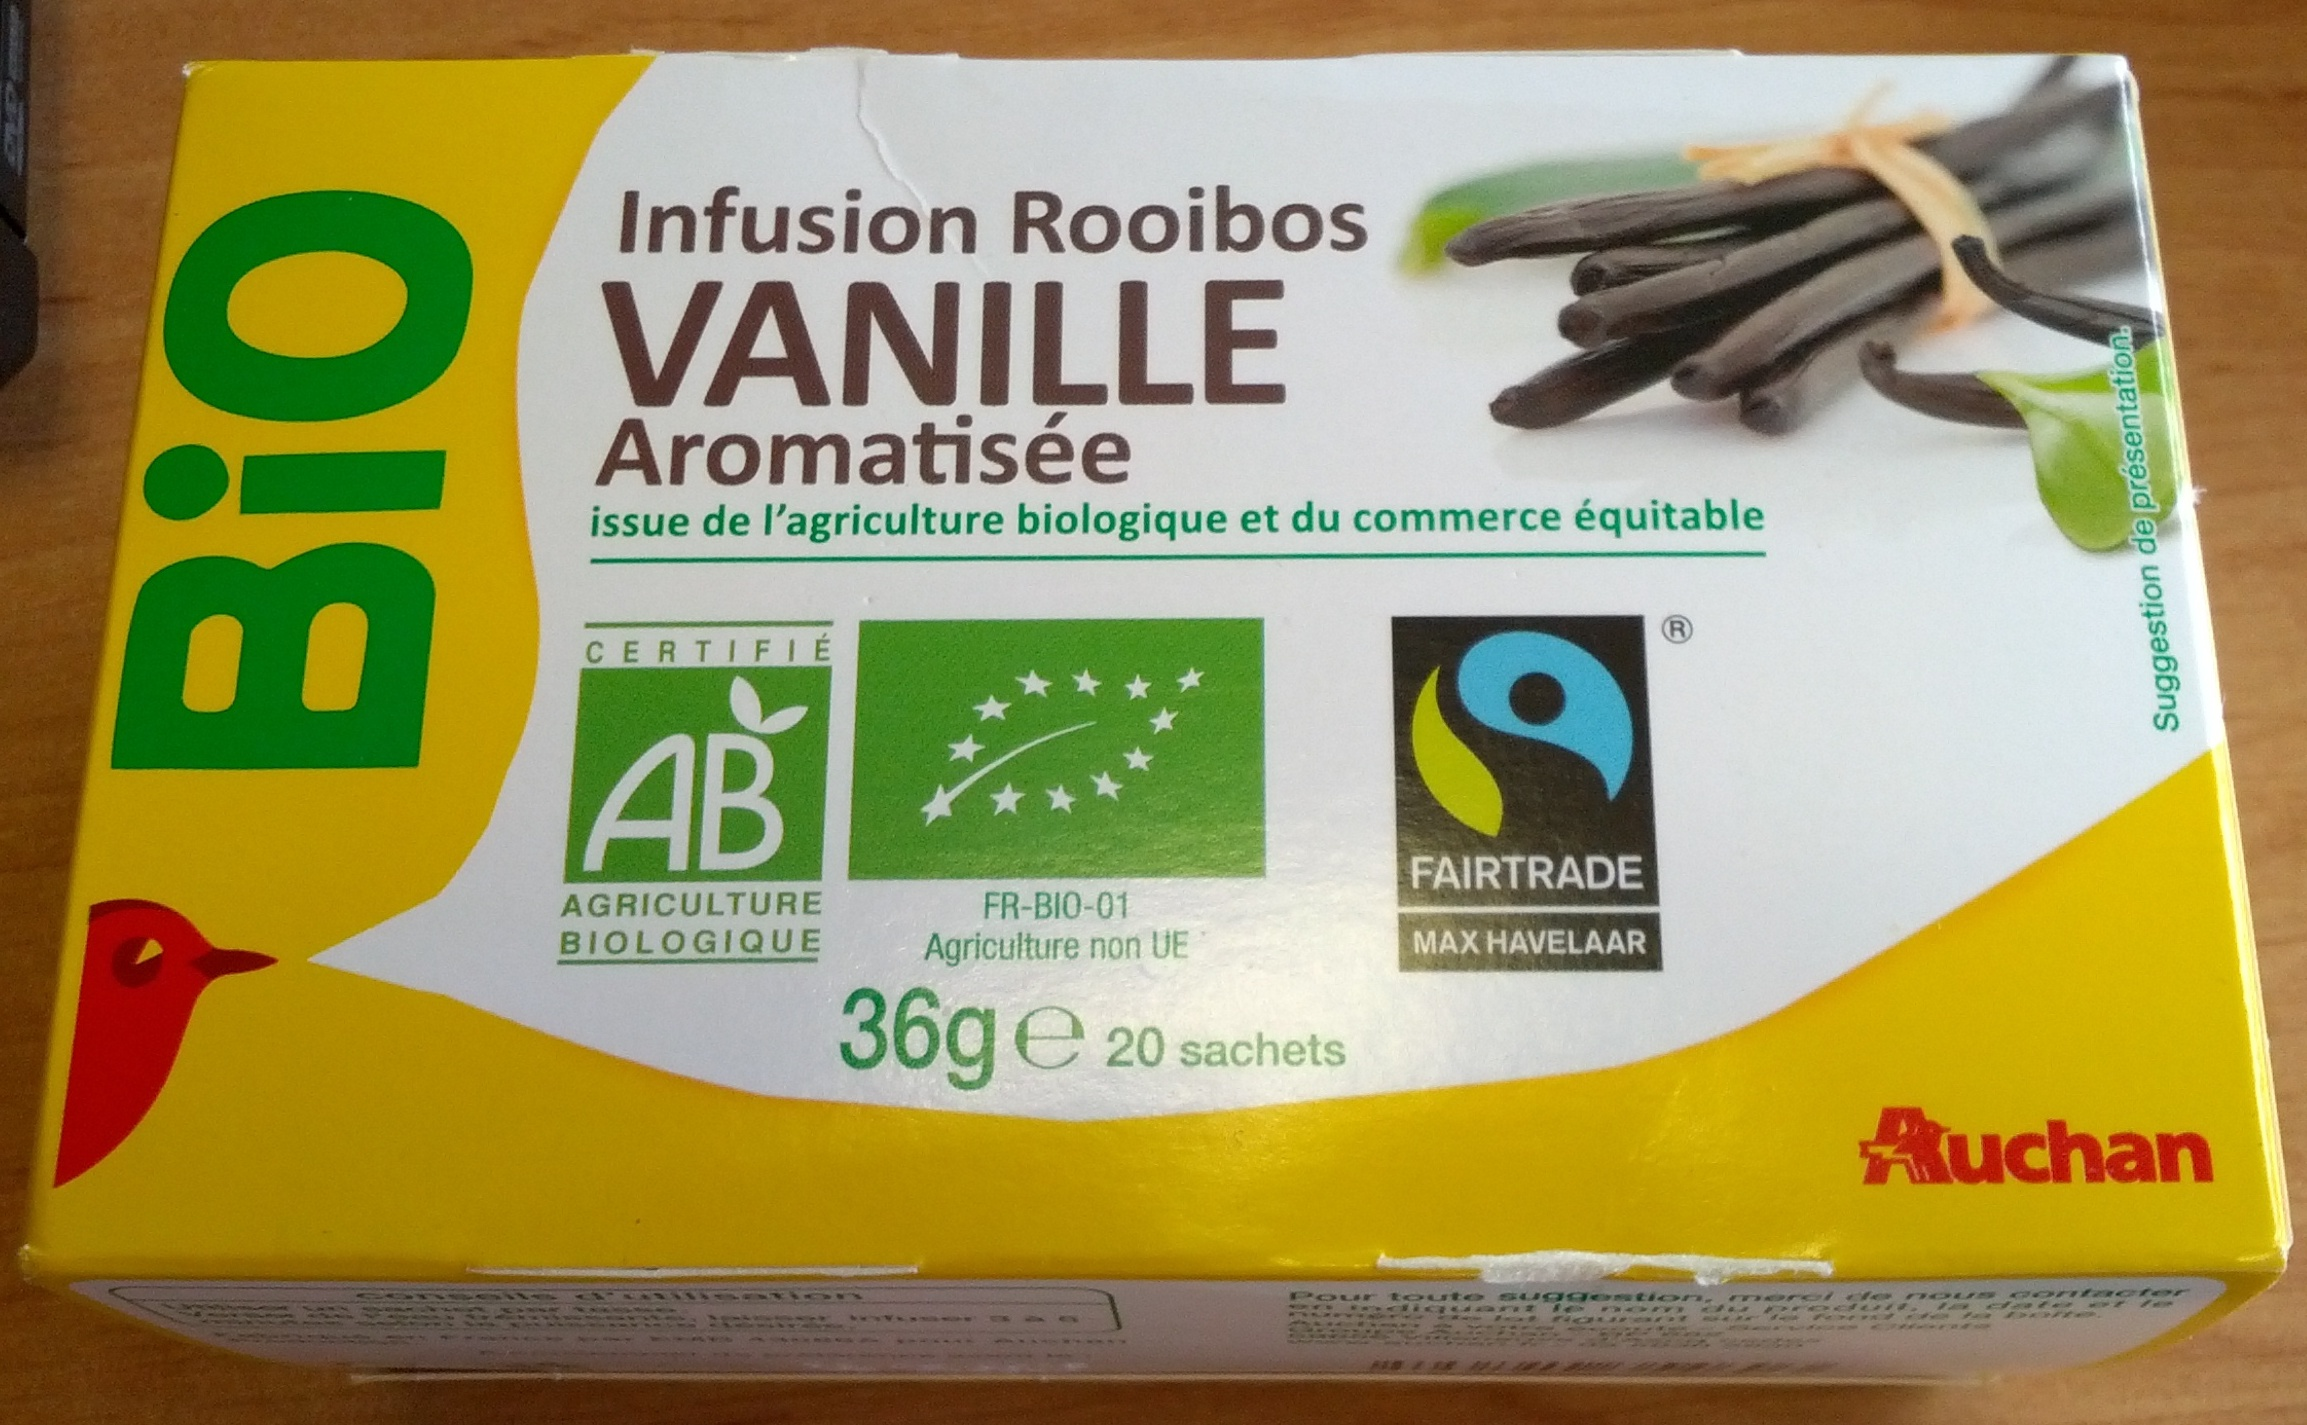 infusion rooibos vanille - Auchan - 20 sachets